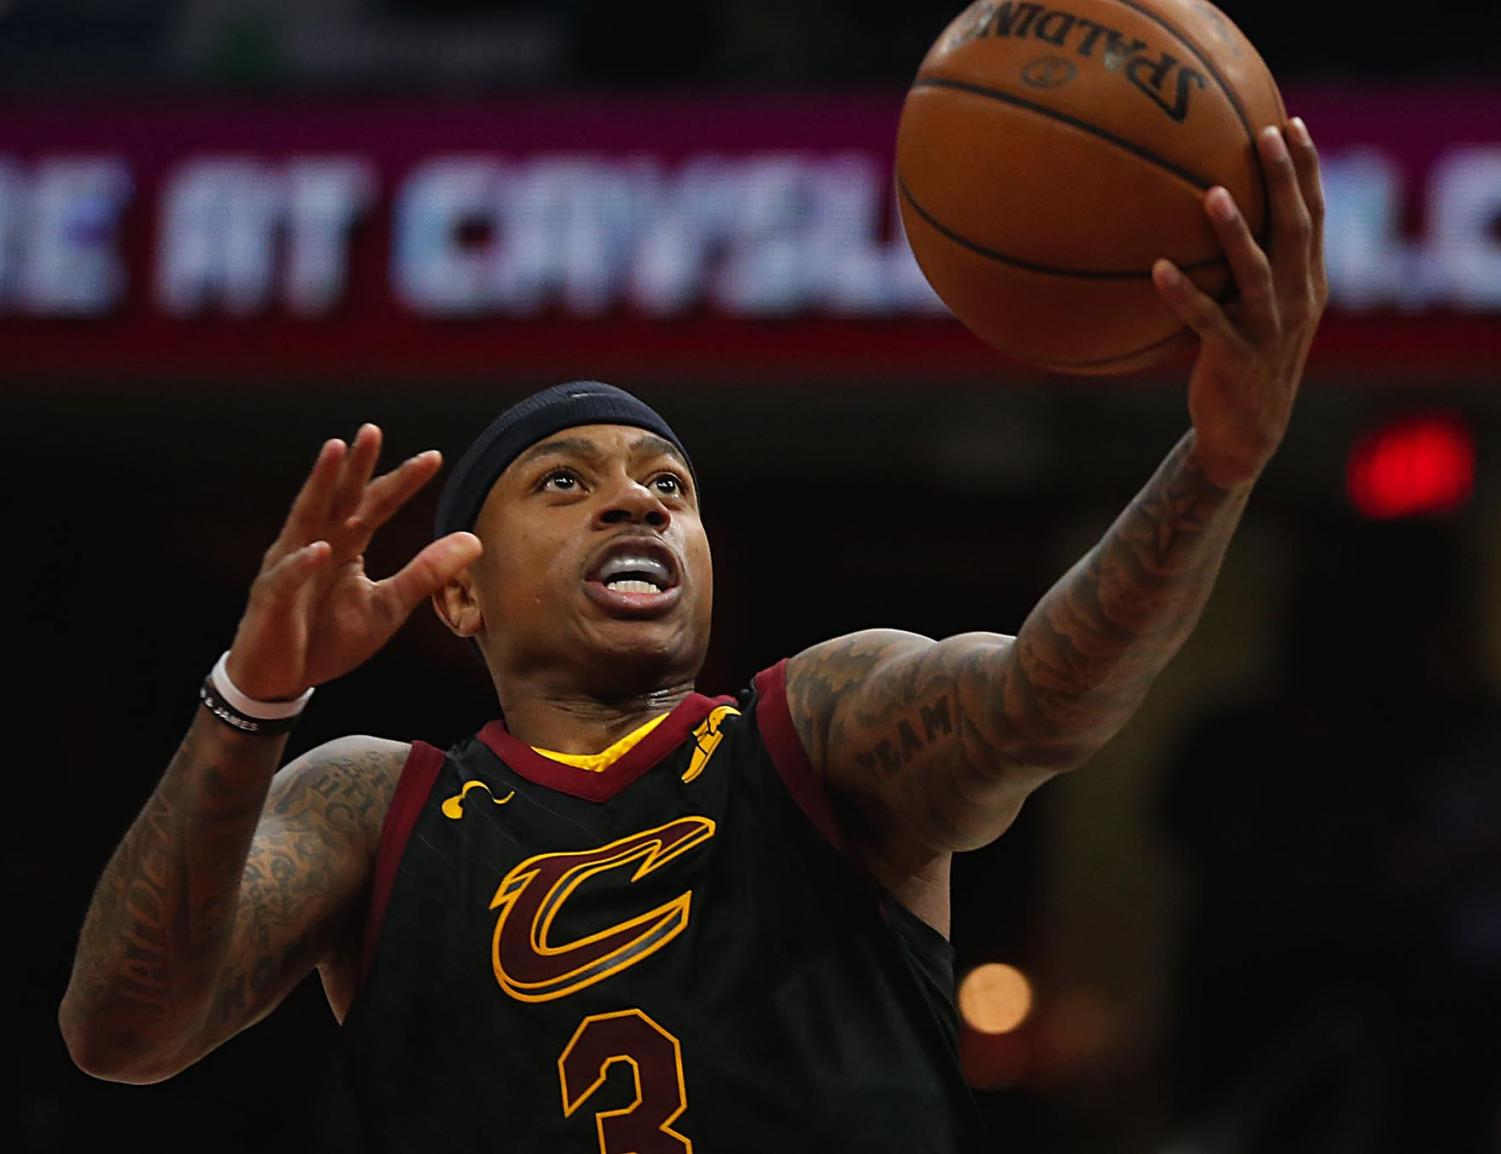 Sports writer Jerrius Campbell analyzes the recent trades in the NBA, such as the Cavaliers' Isaiah Thomas' move to the Los Angeles Lakers.